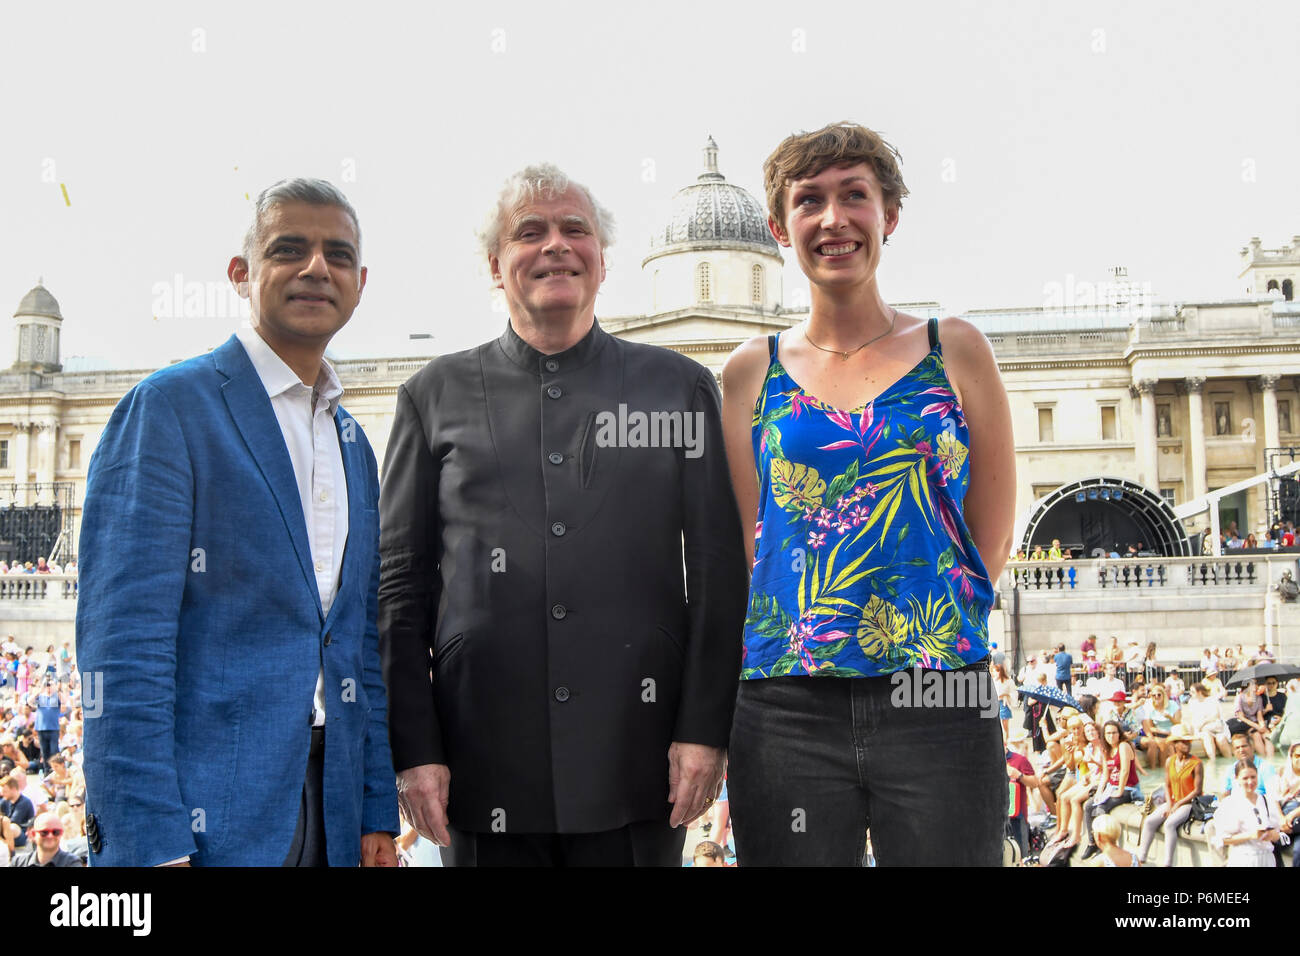 London, UK. 1st July, 2018. Photocall of Sadiq Khan,Sir Simon Rattle, KATE WHITLEY at the BMW Classics + live streamed on YouTube in Trafalgar Square on a hot weather in London, UK on July 1st 2018. Credit: Picture Capital/Alamy Live News - Stock Image